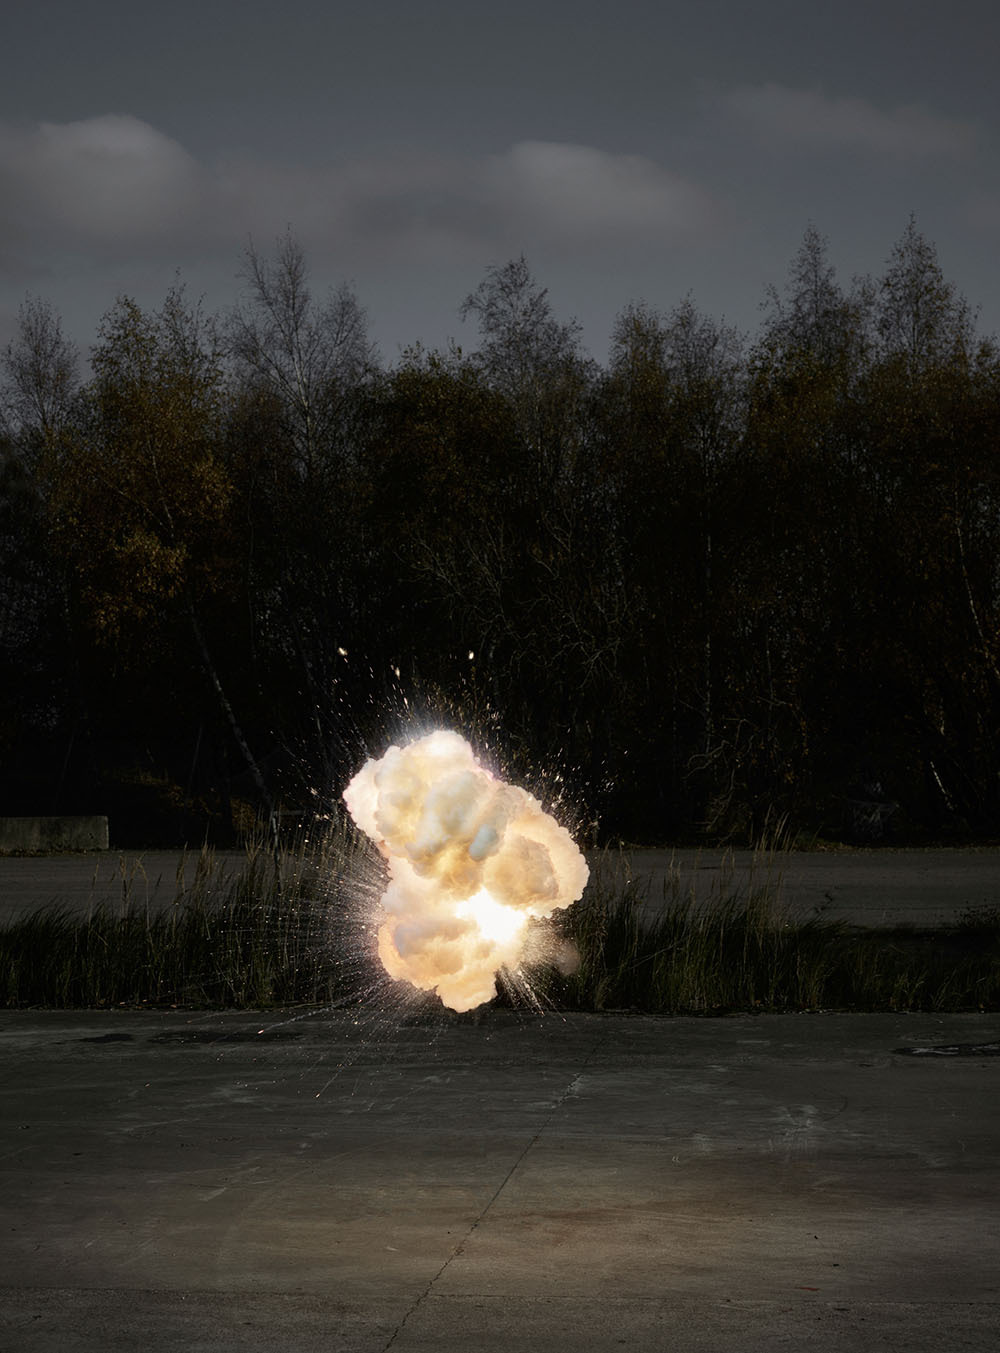 """migurski: """"(via Cloud-Like Explosions Photographed in Midair by Ken Hermann 